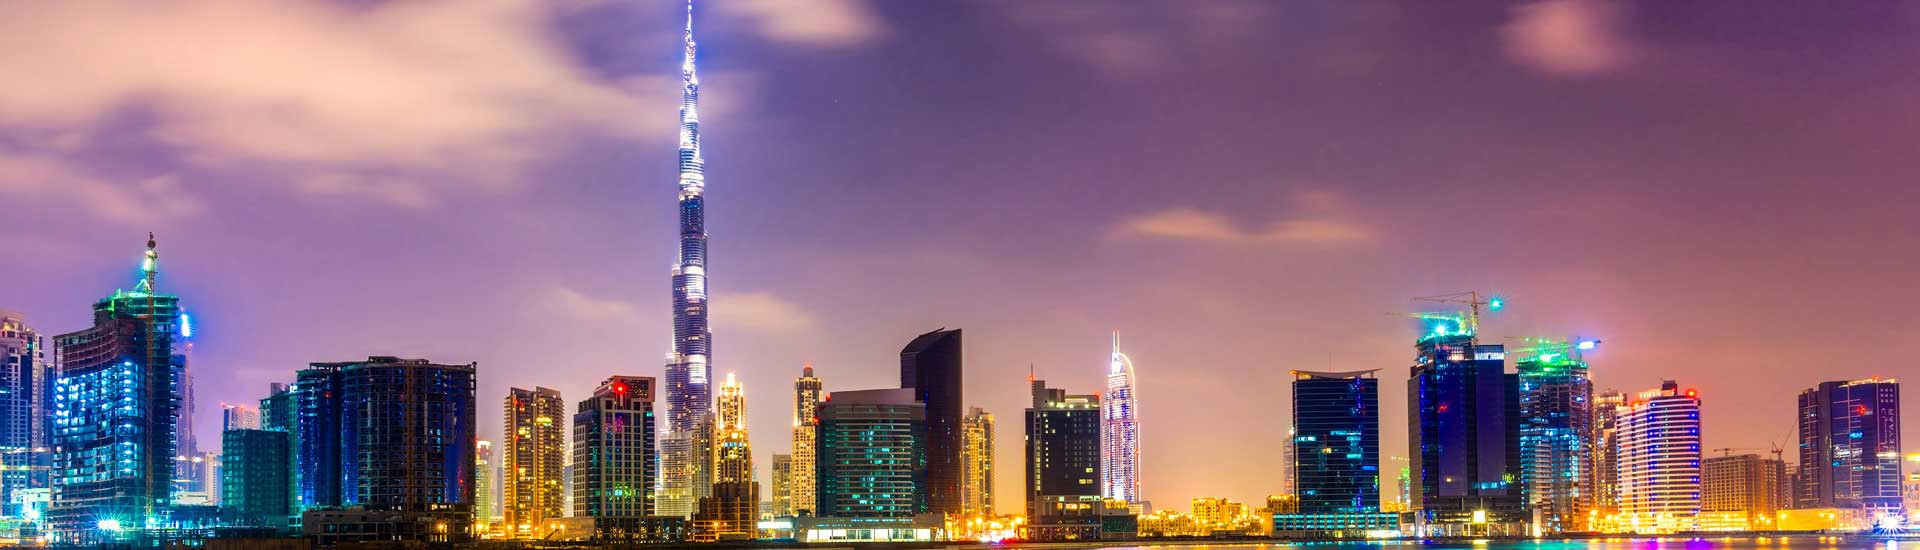 The coolest and most unusual buildings in Dubai